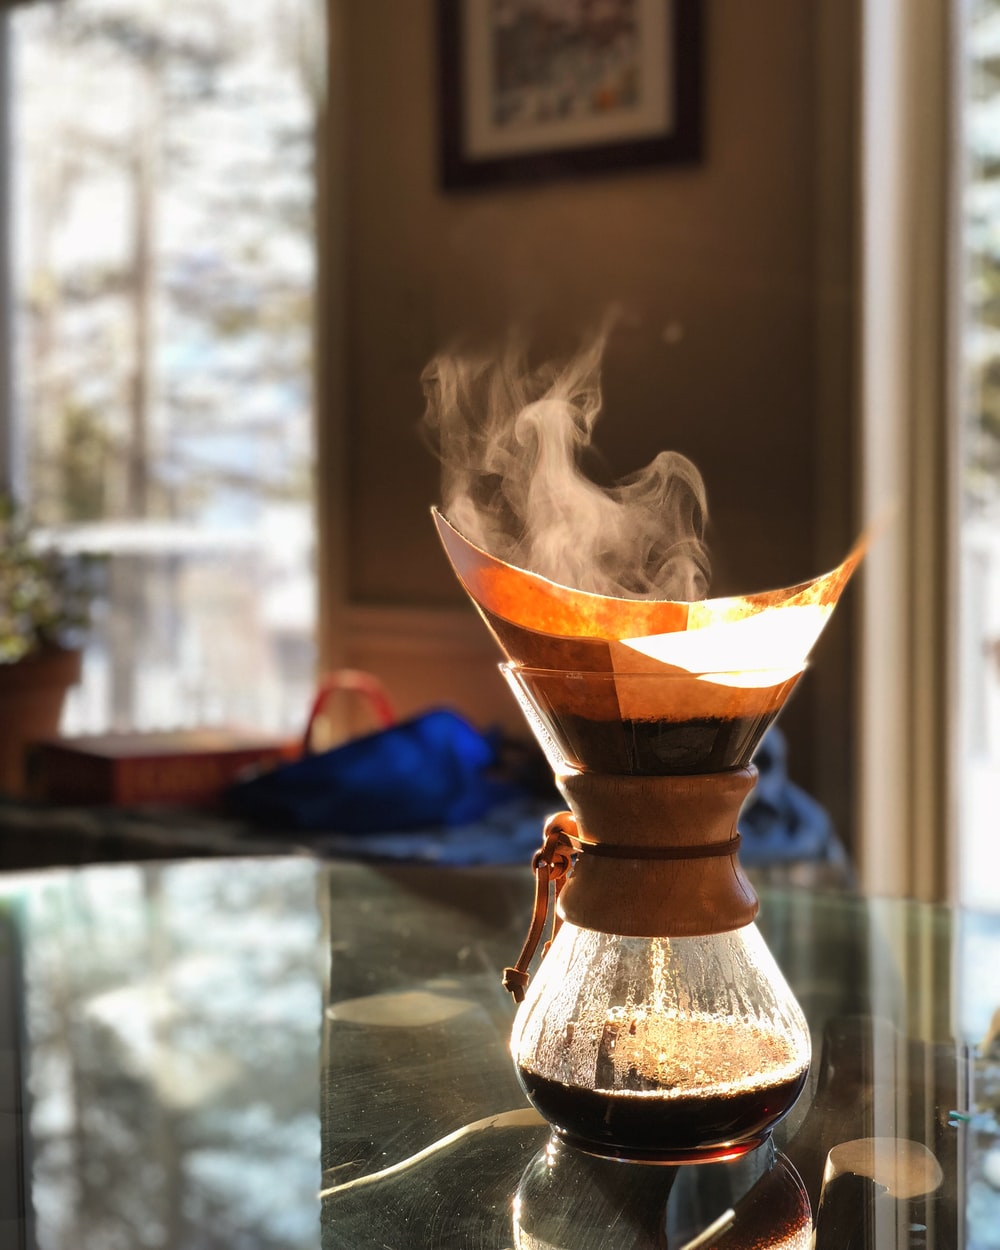 pour-over coffeemaker on glass table